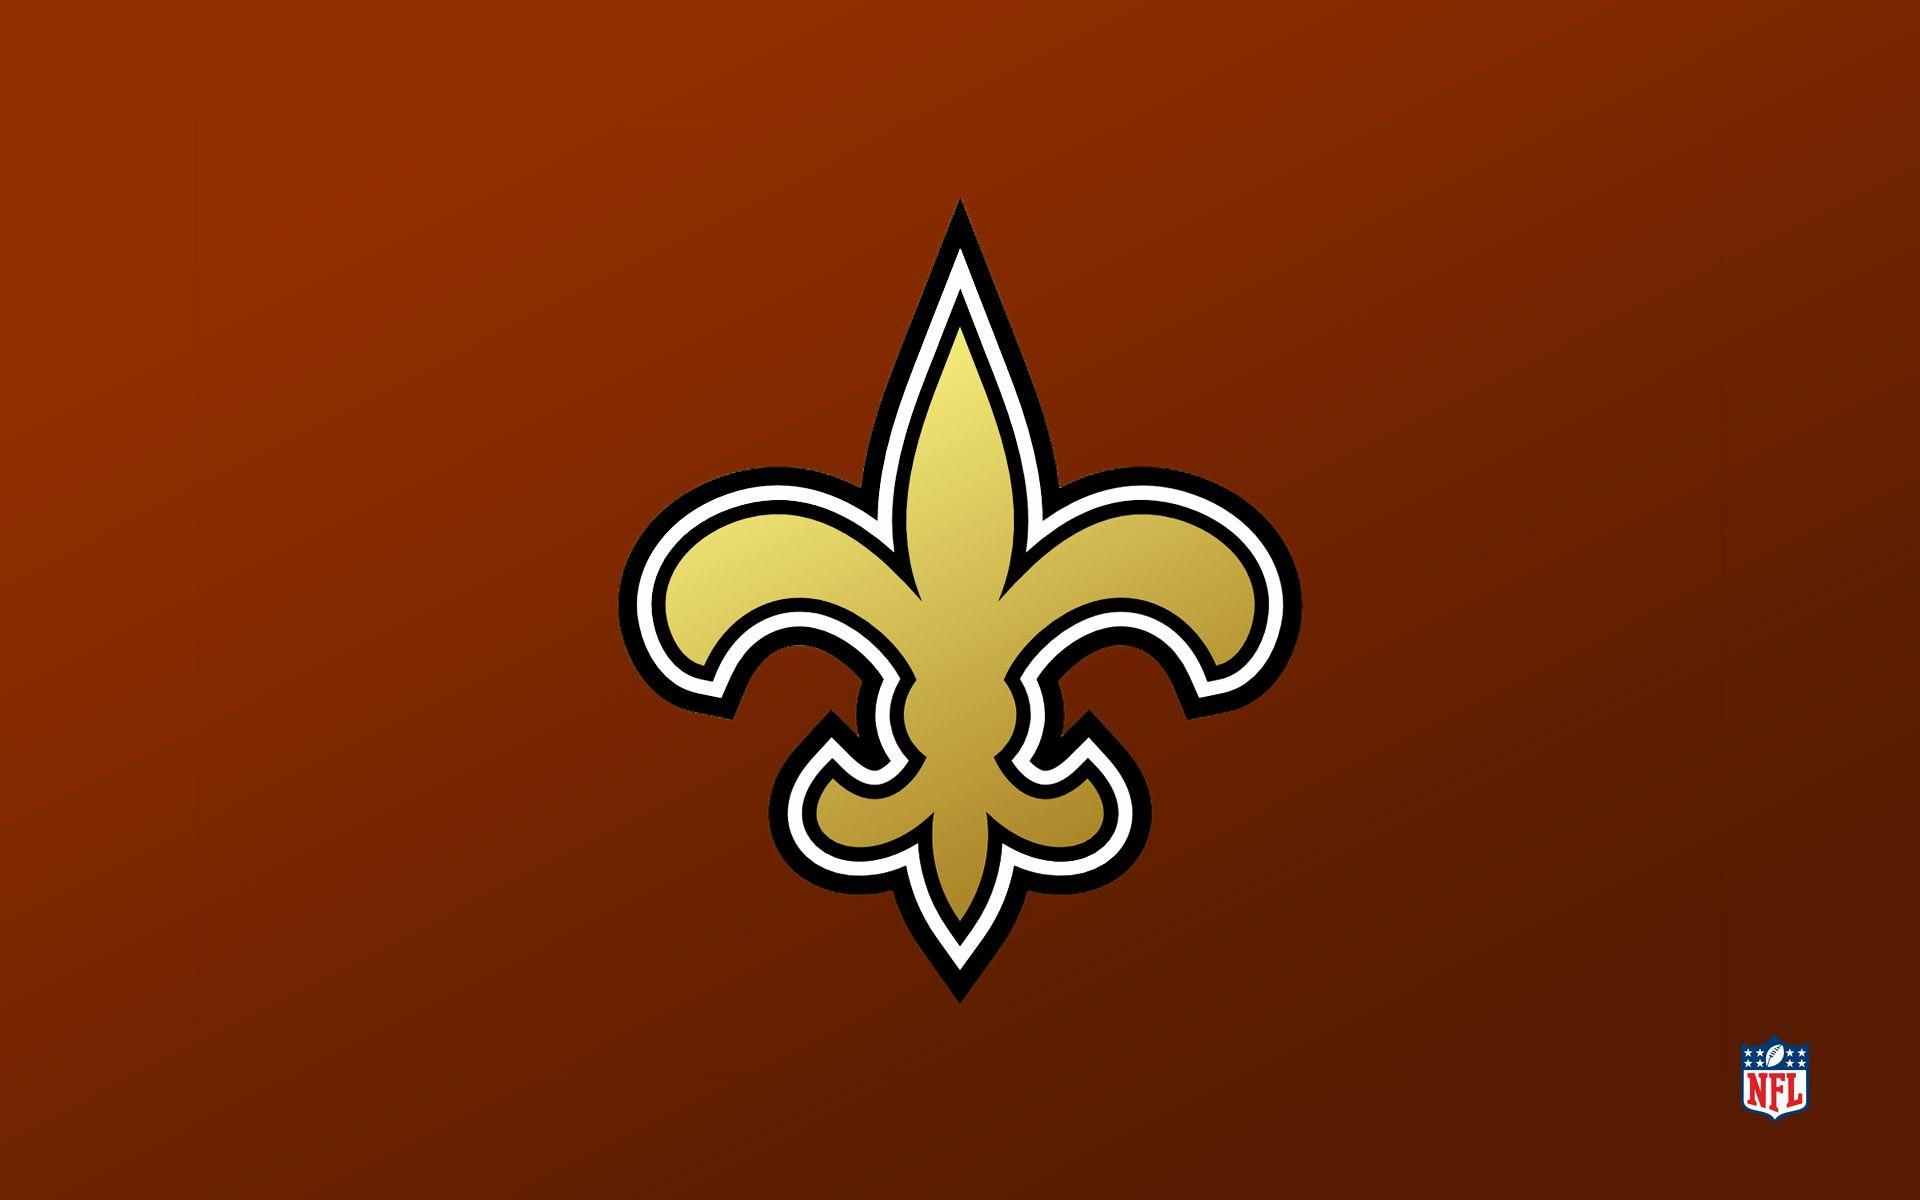 new orleans saints informative speech Informative speech assignment information speeches: 4 - 5 minutes speech day: come to class early on speech days do not disrupt other speeches new orleans was not prepared at all for really any major hurricane they had done a practice hurricane the season before hurricane katrina and it.